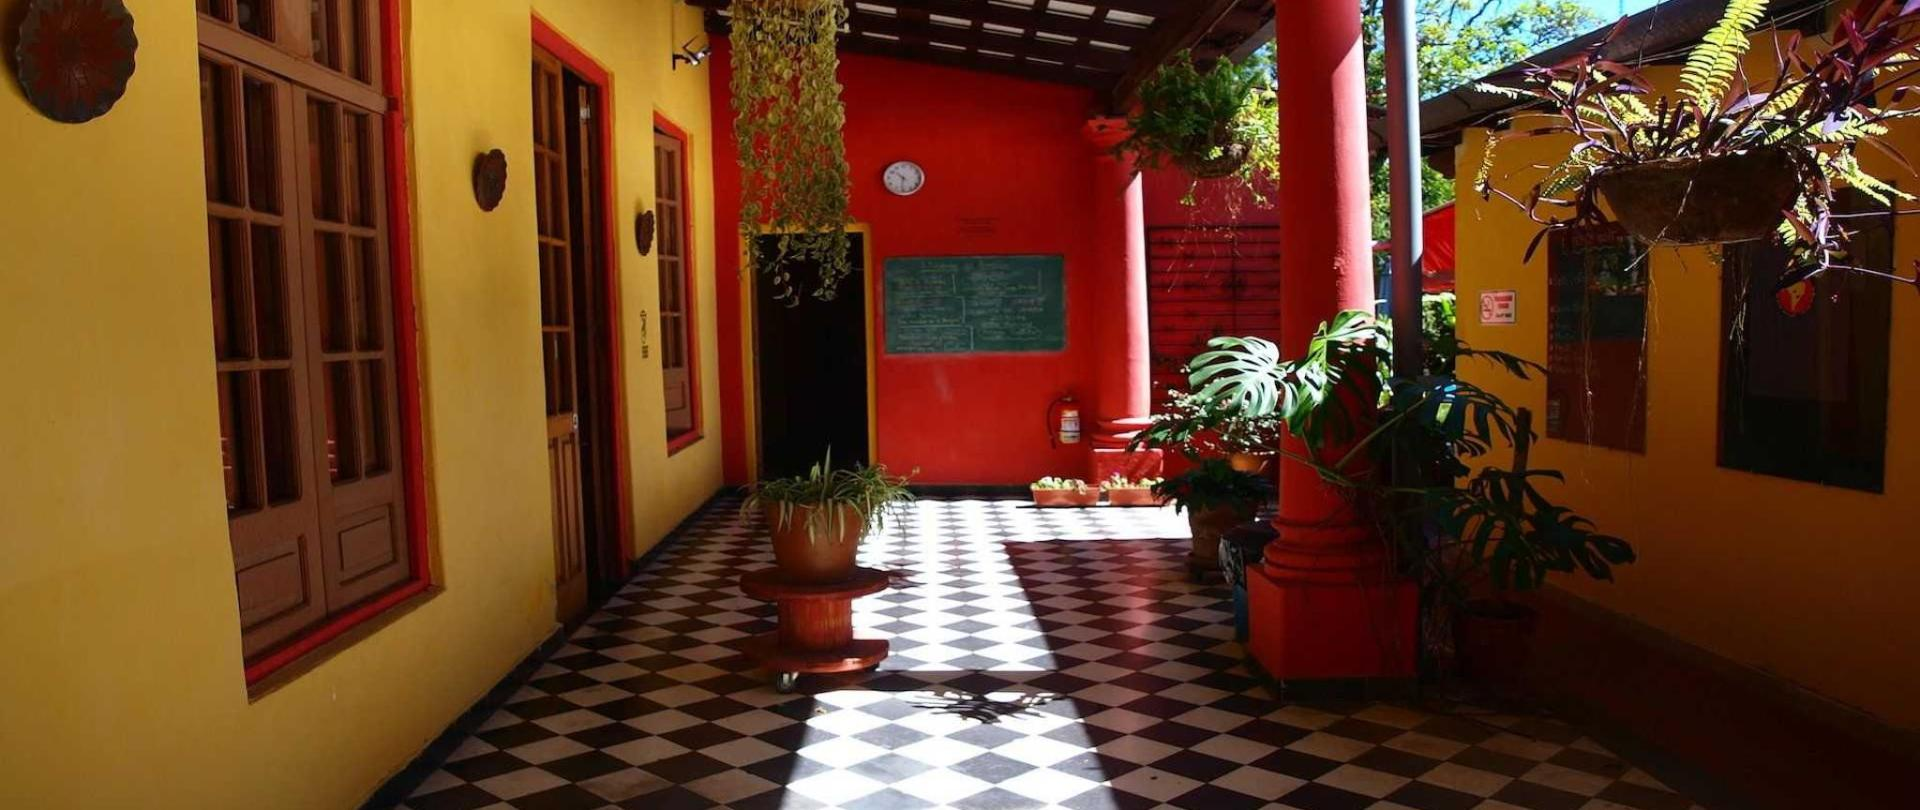 common area hostel asuncion paraguay nomada.JPG